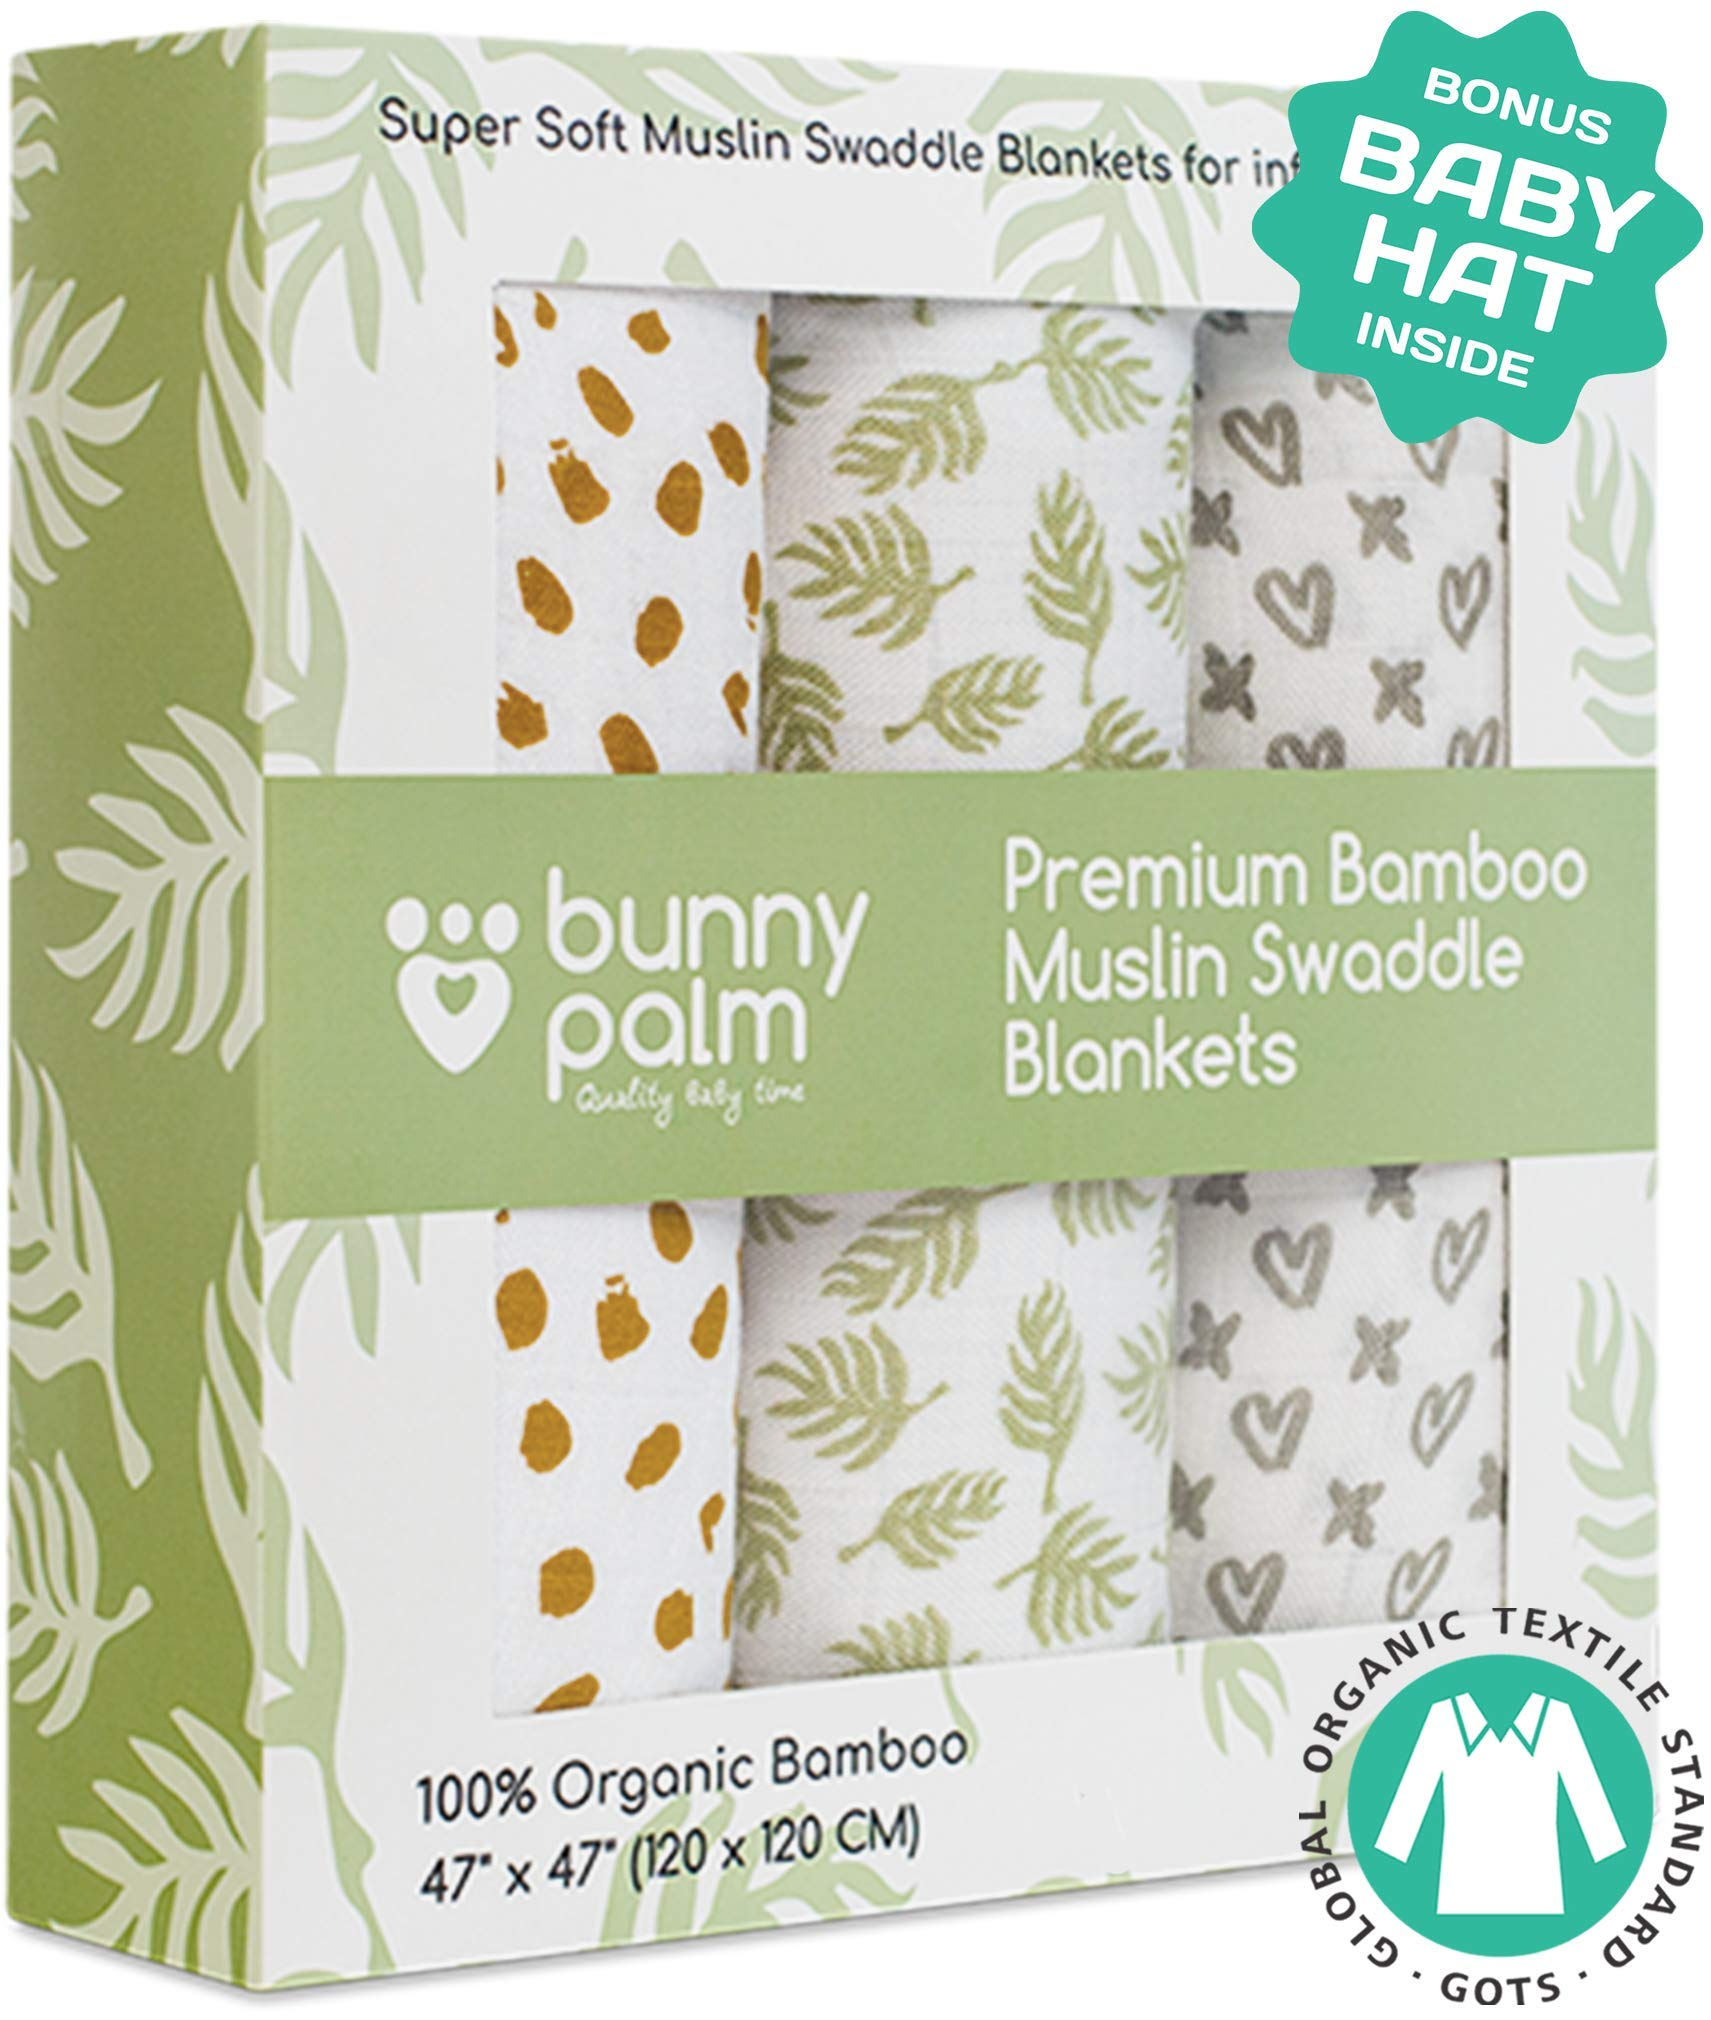 Muslin Swaddle Blankets, Unisex Organic Bamboo for Baby Set of 3 Swaddles for Boys and Girls, Soft Swaddling Receiving Sleep Blankets, Unisex Infant Toddler Gender Neutral Gift Baby Hat by Bunny Palm